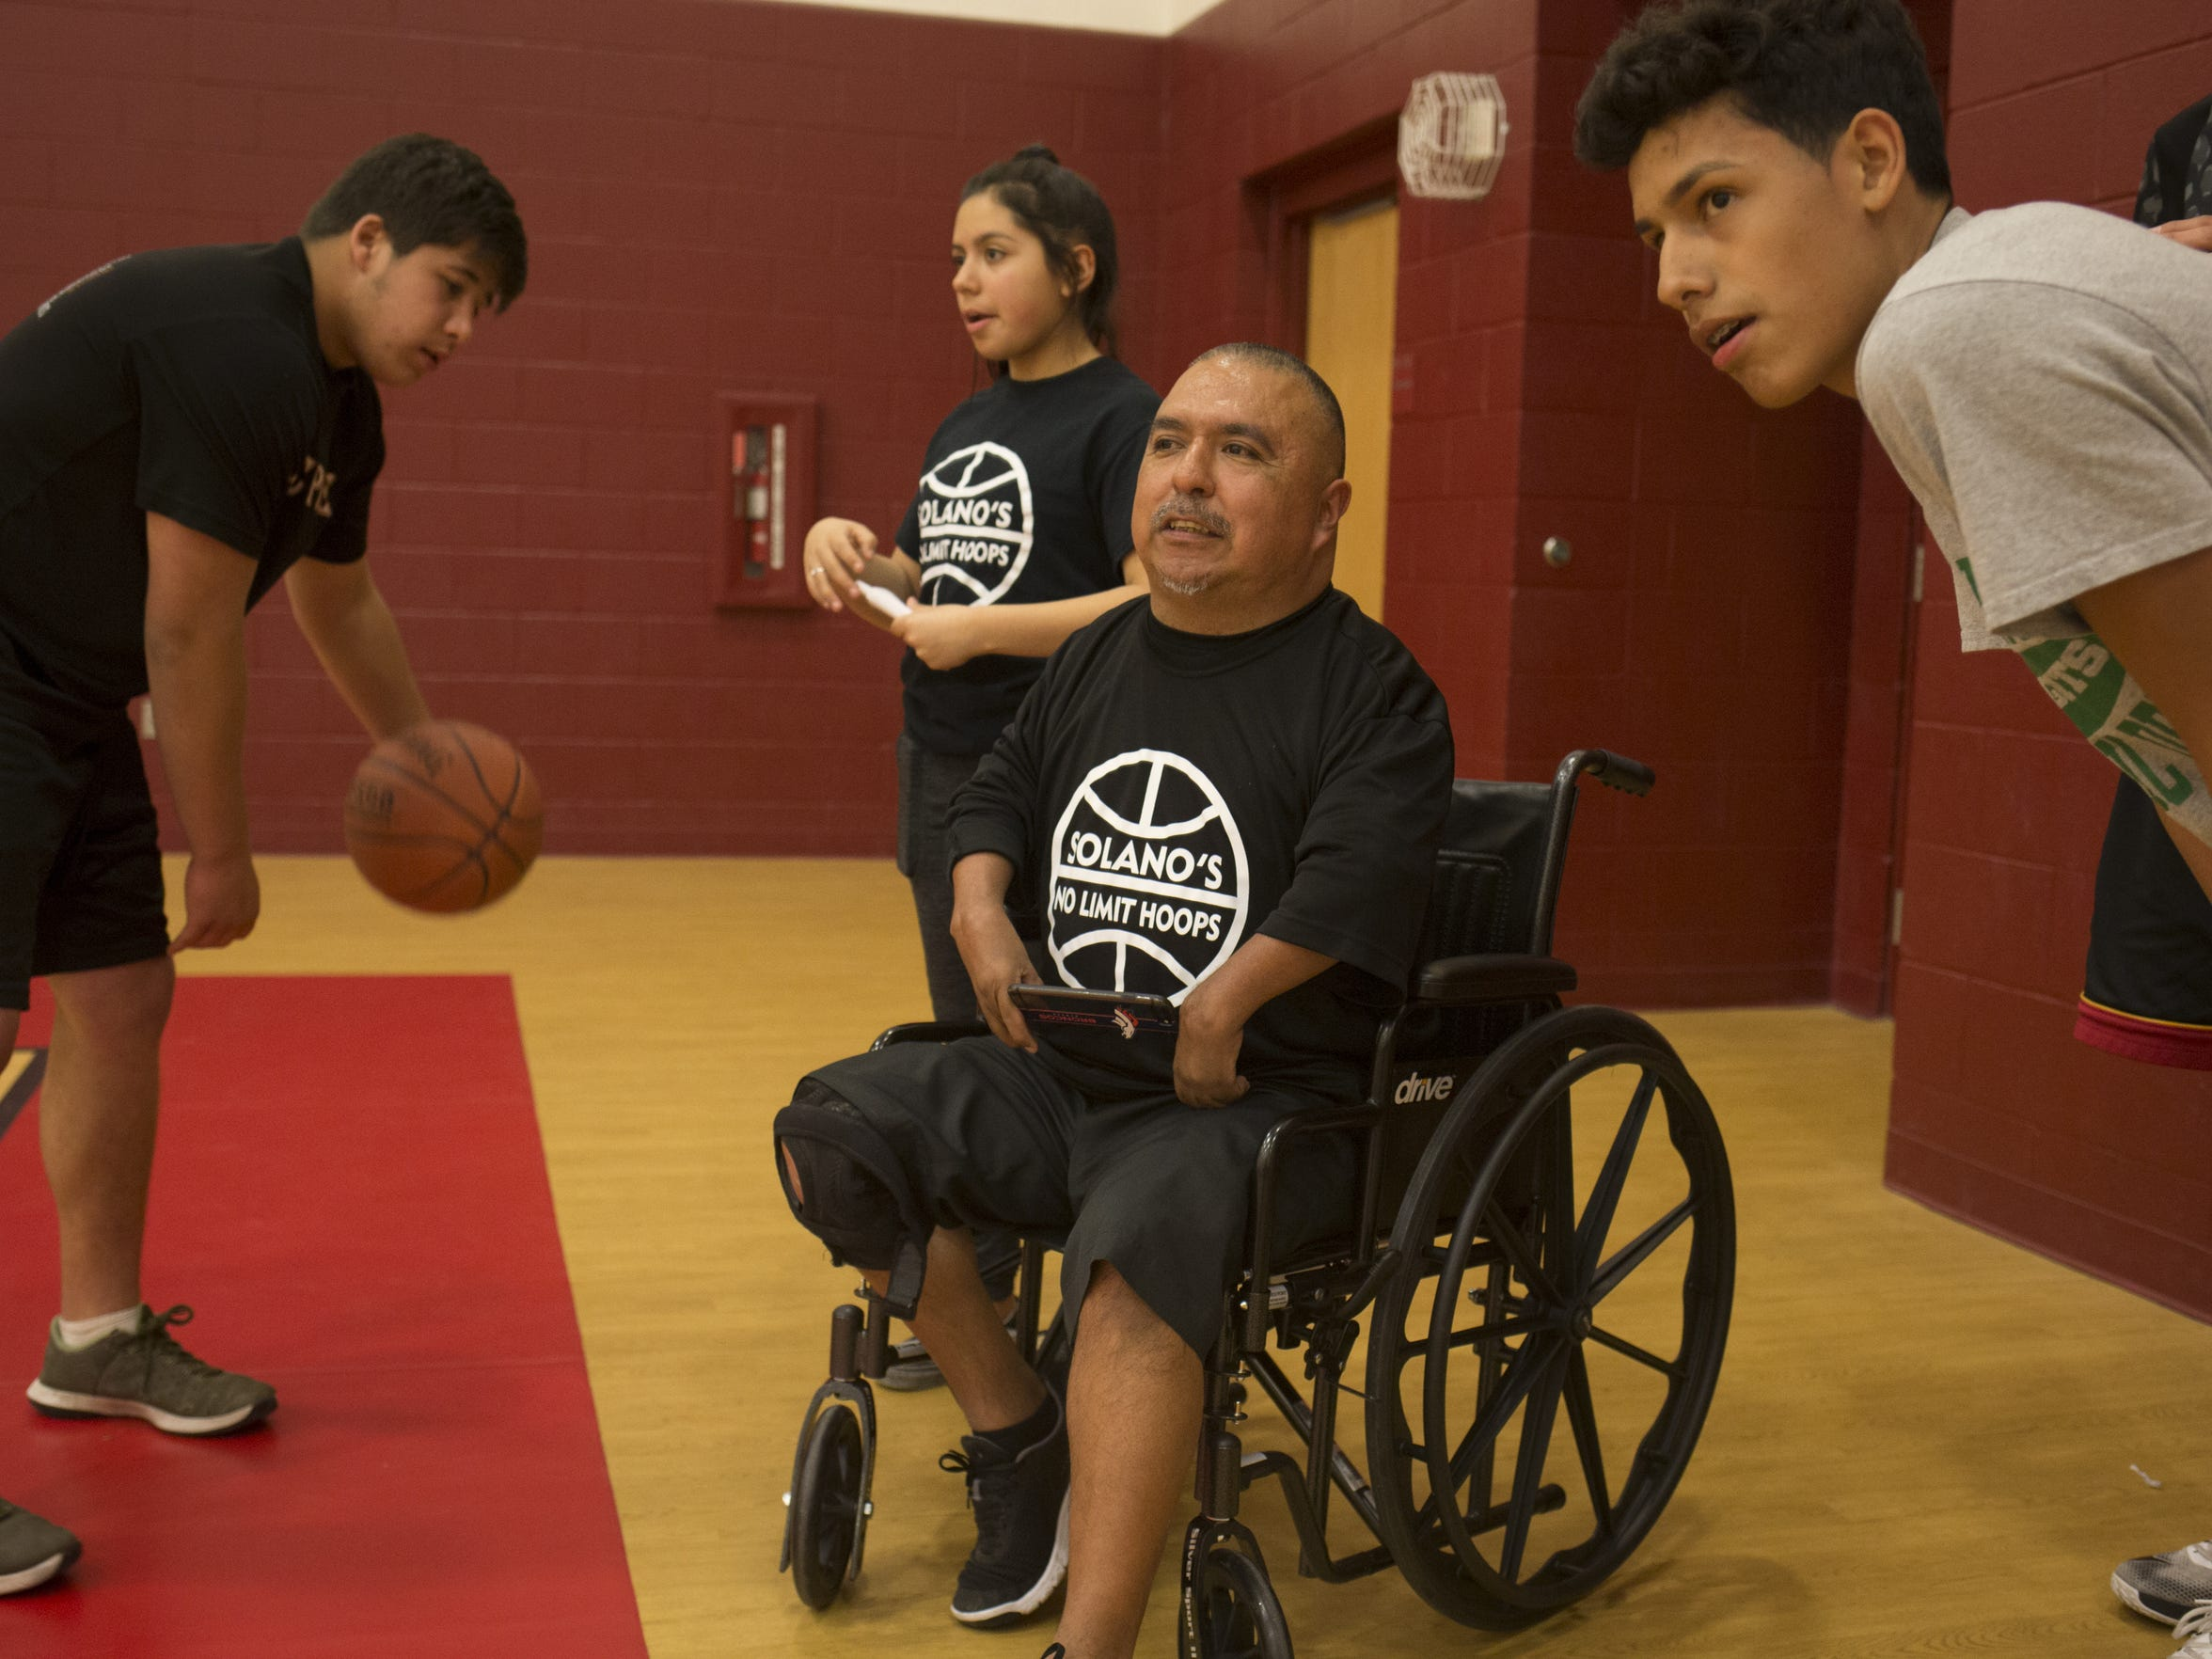 David Solano, center, talks with Eddie Martinez, Jr. during Solano's No Limit Hoops in February.